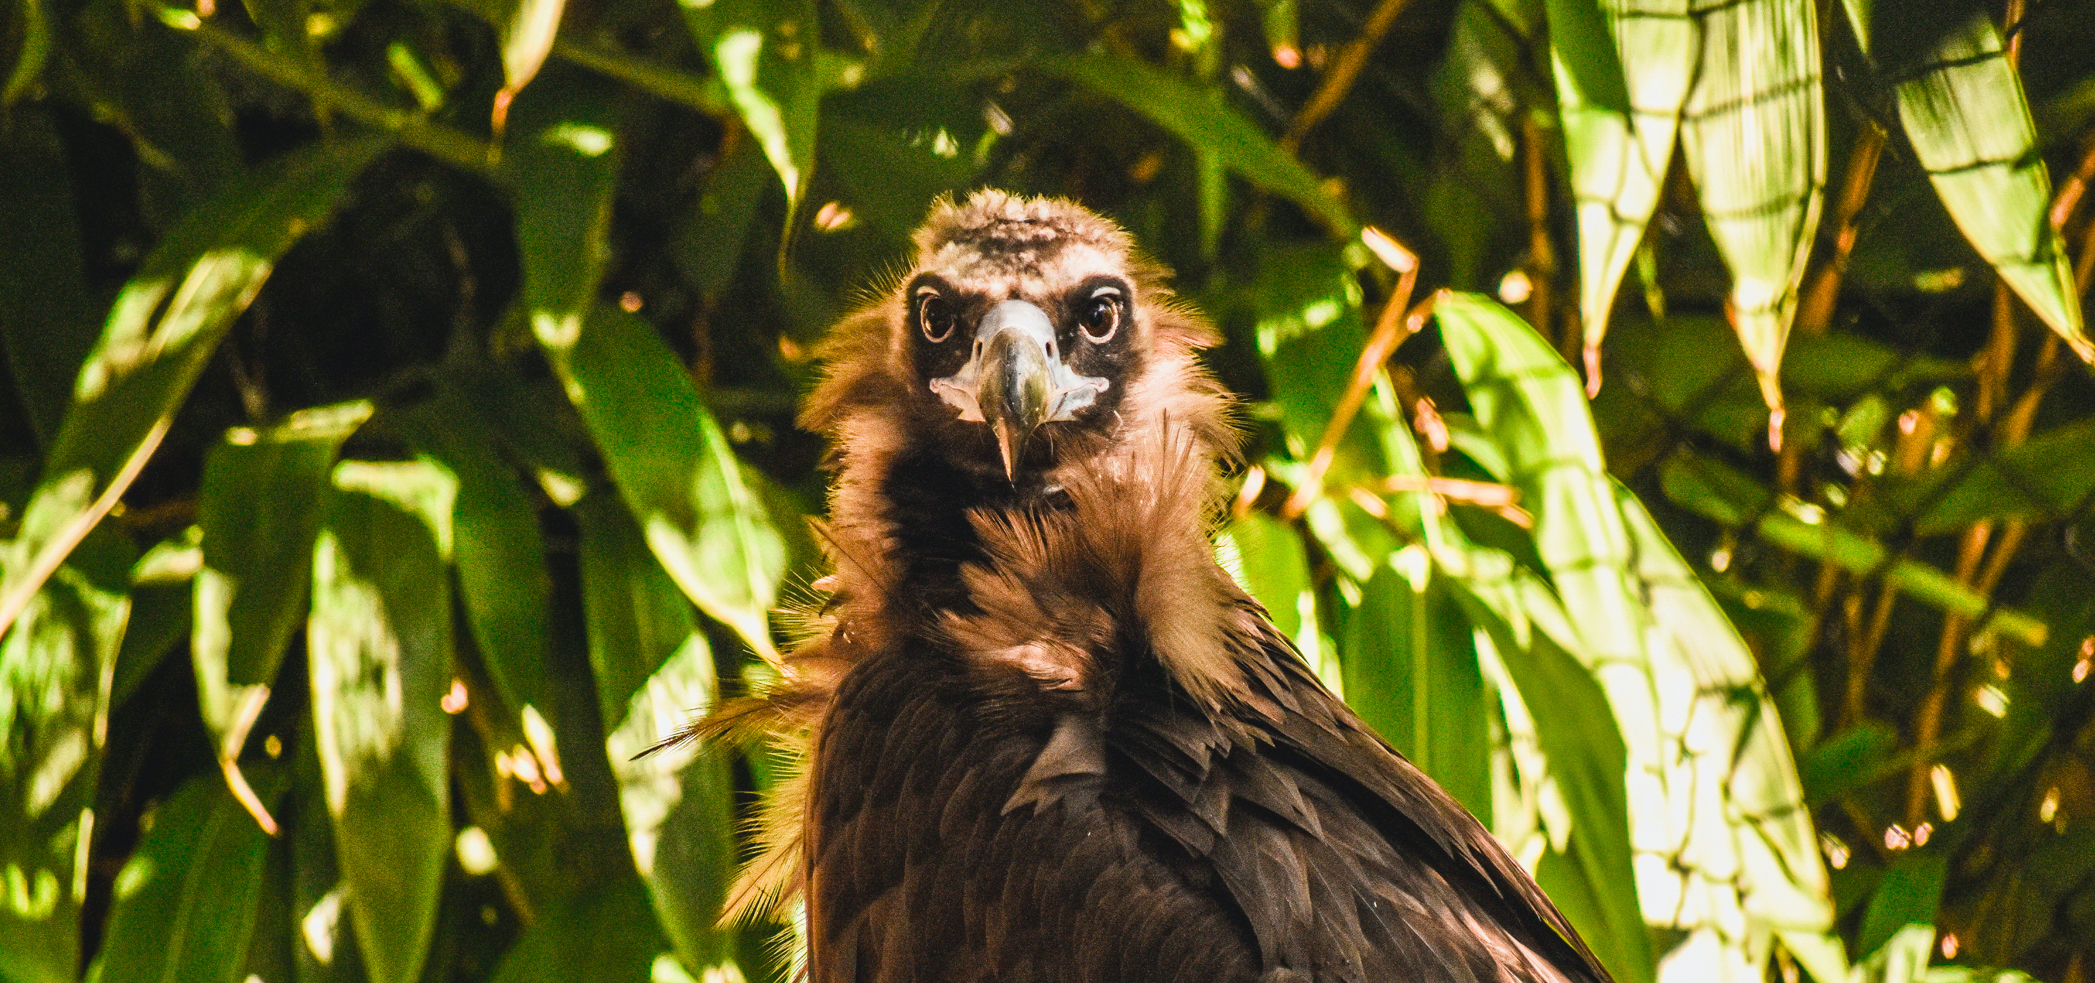 Cinereous Vulture at the Virginia Zoo